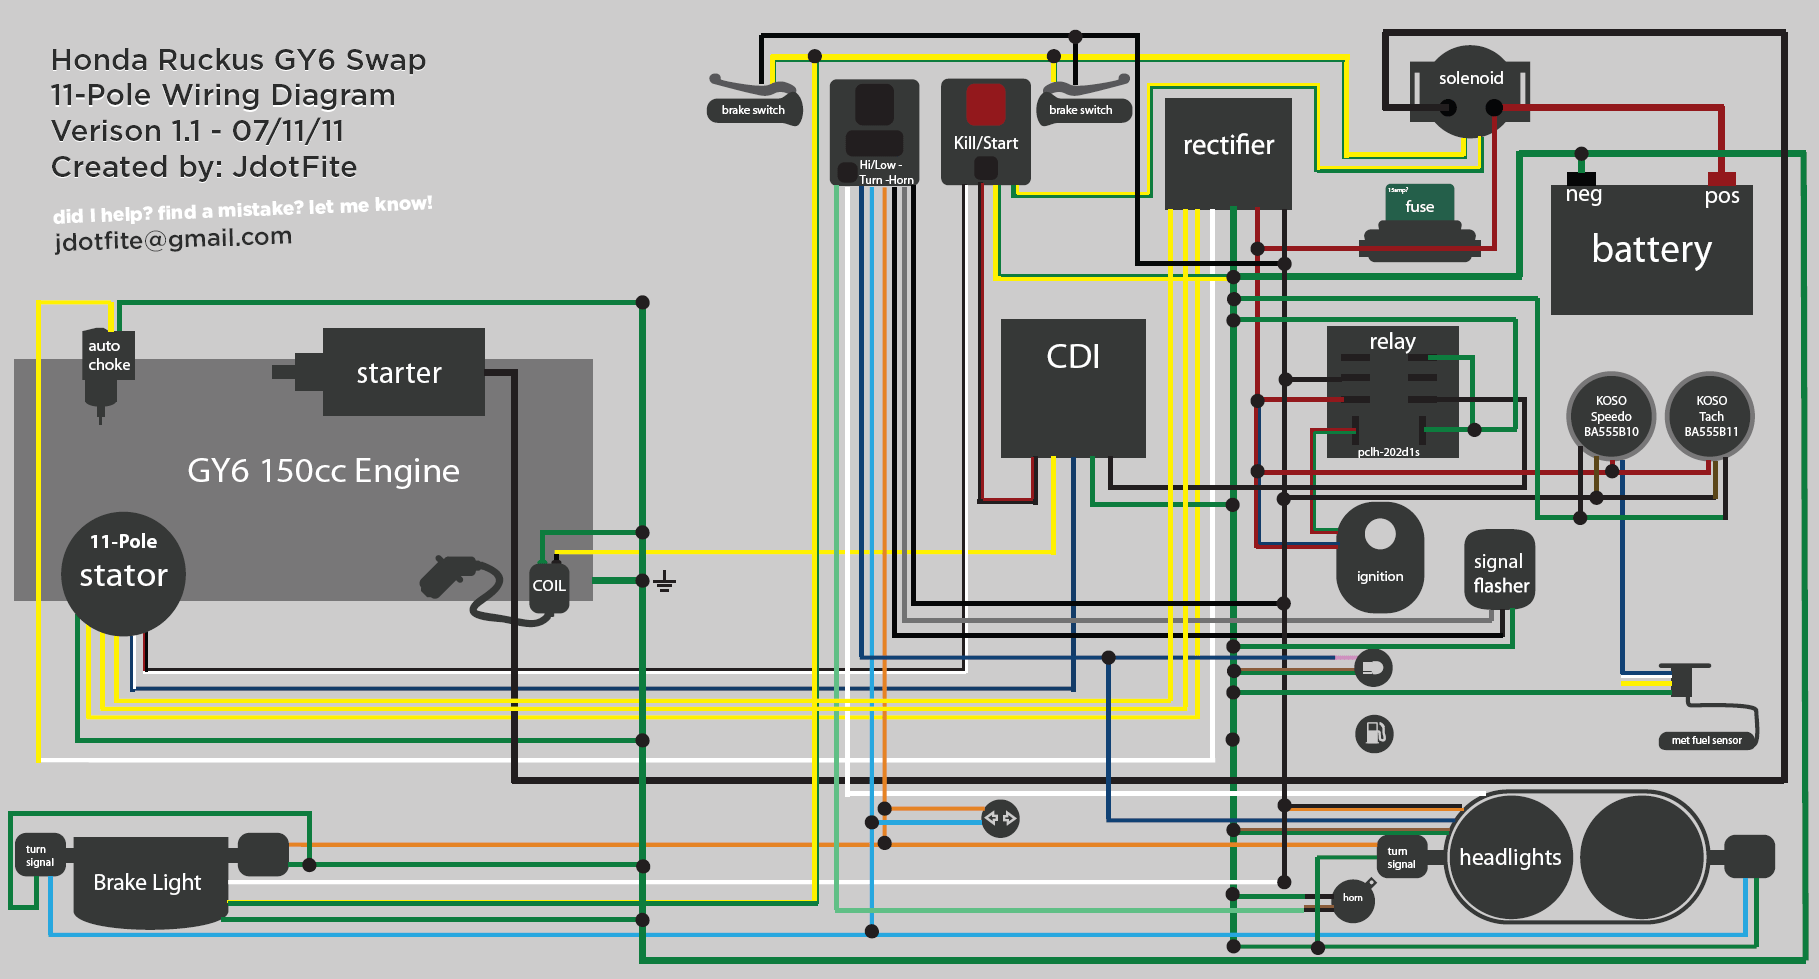 ruckus gy6 wiring diagram ruckus gy6 swap wiring diagram honda ruckus documentation chinese 5 wire cdi diagram at edmiracle.co